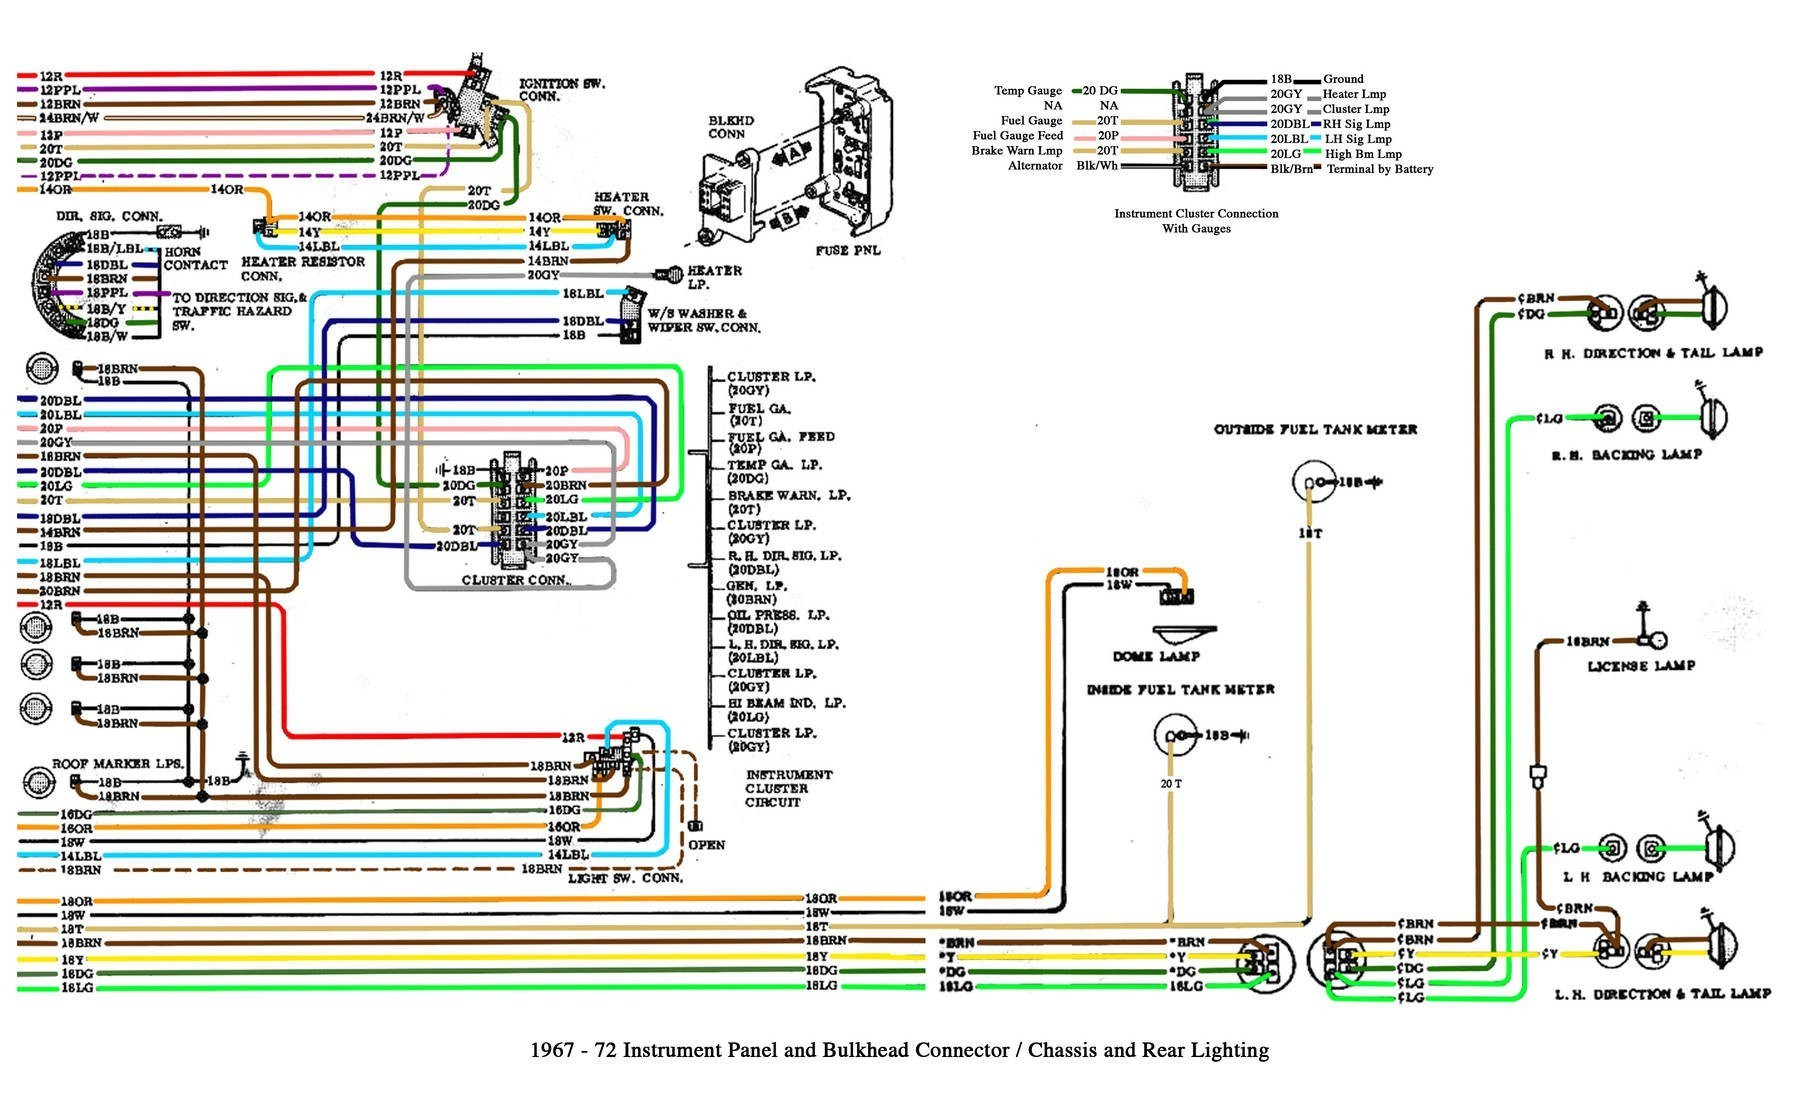 Wiring Diagram For 1995 Chevy Tahoe